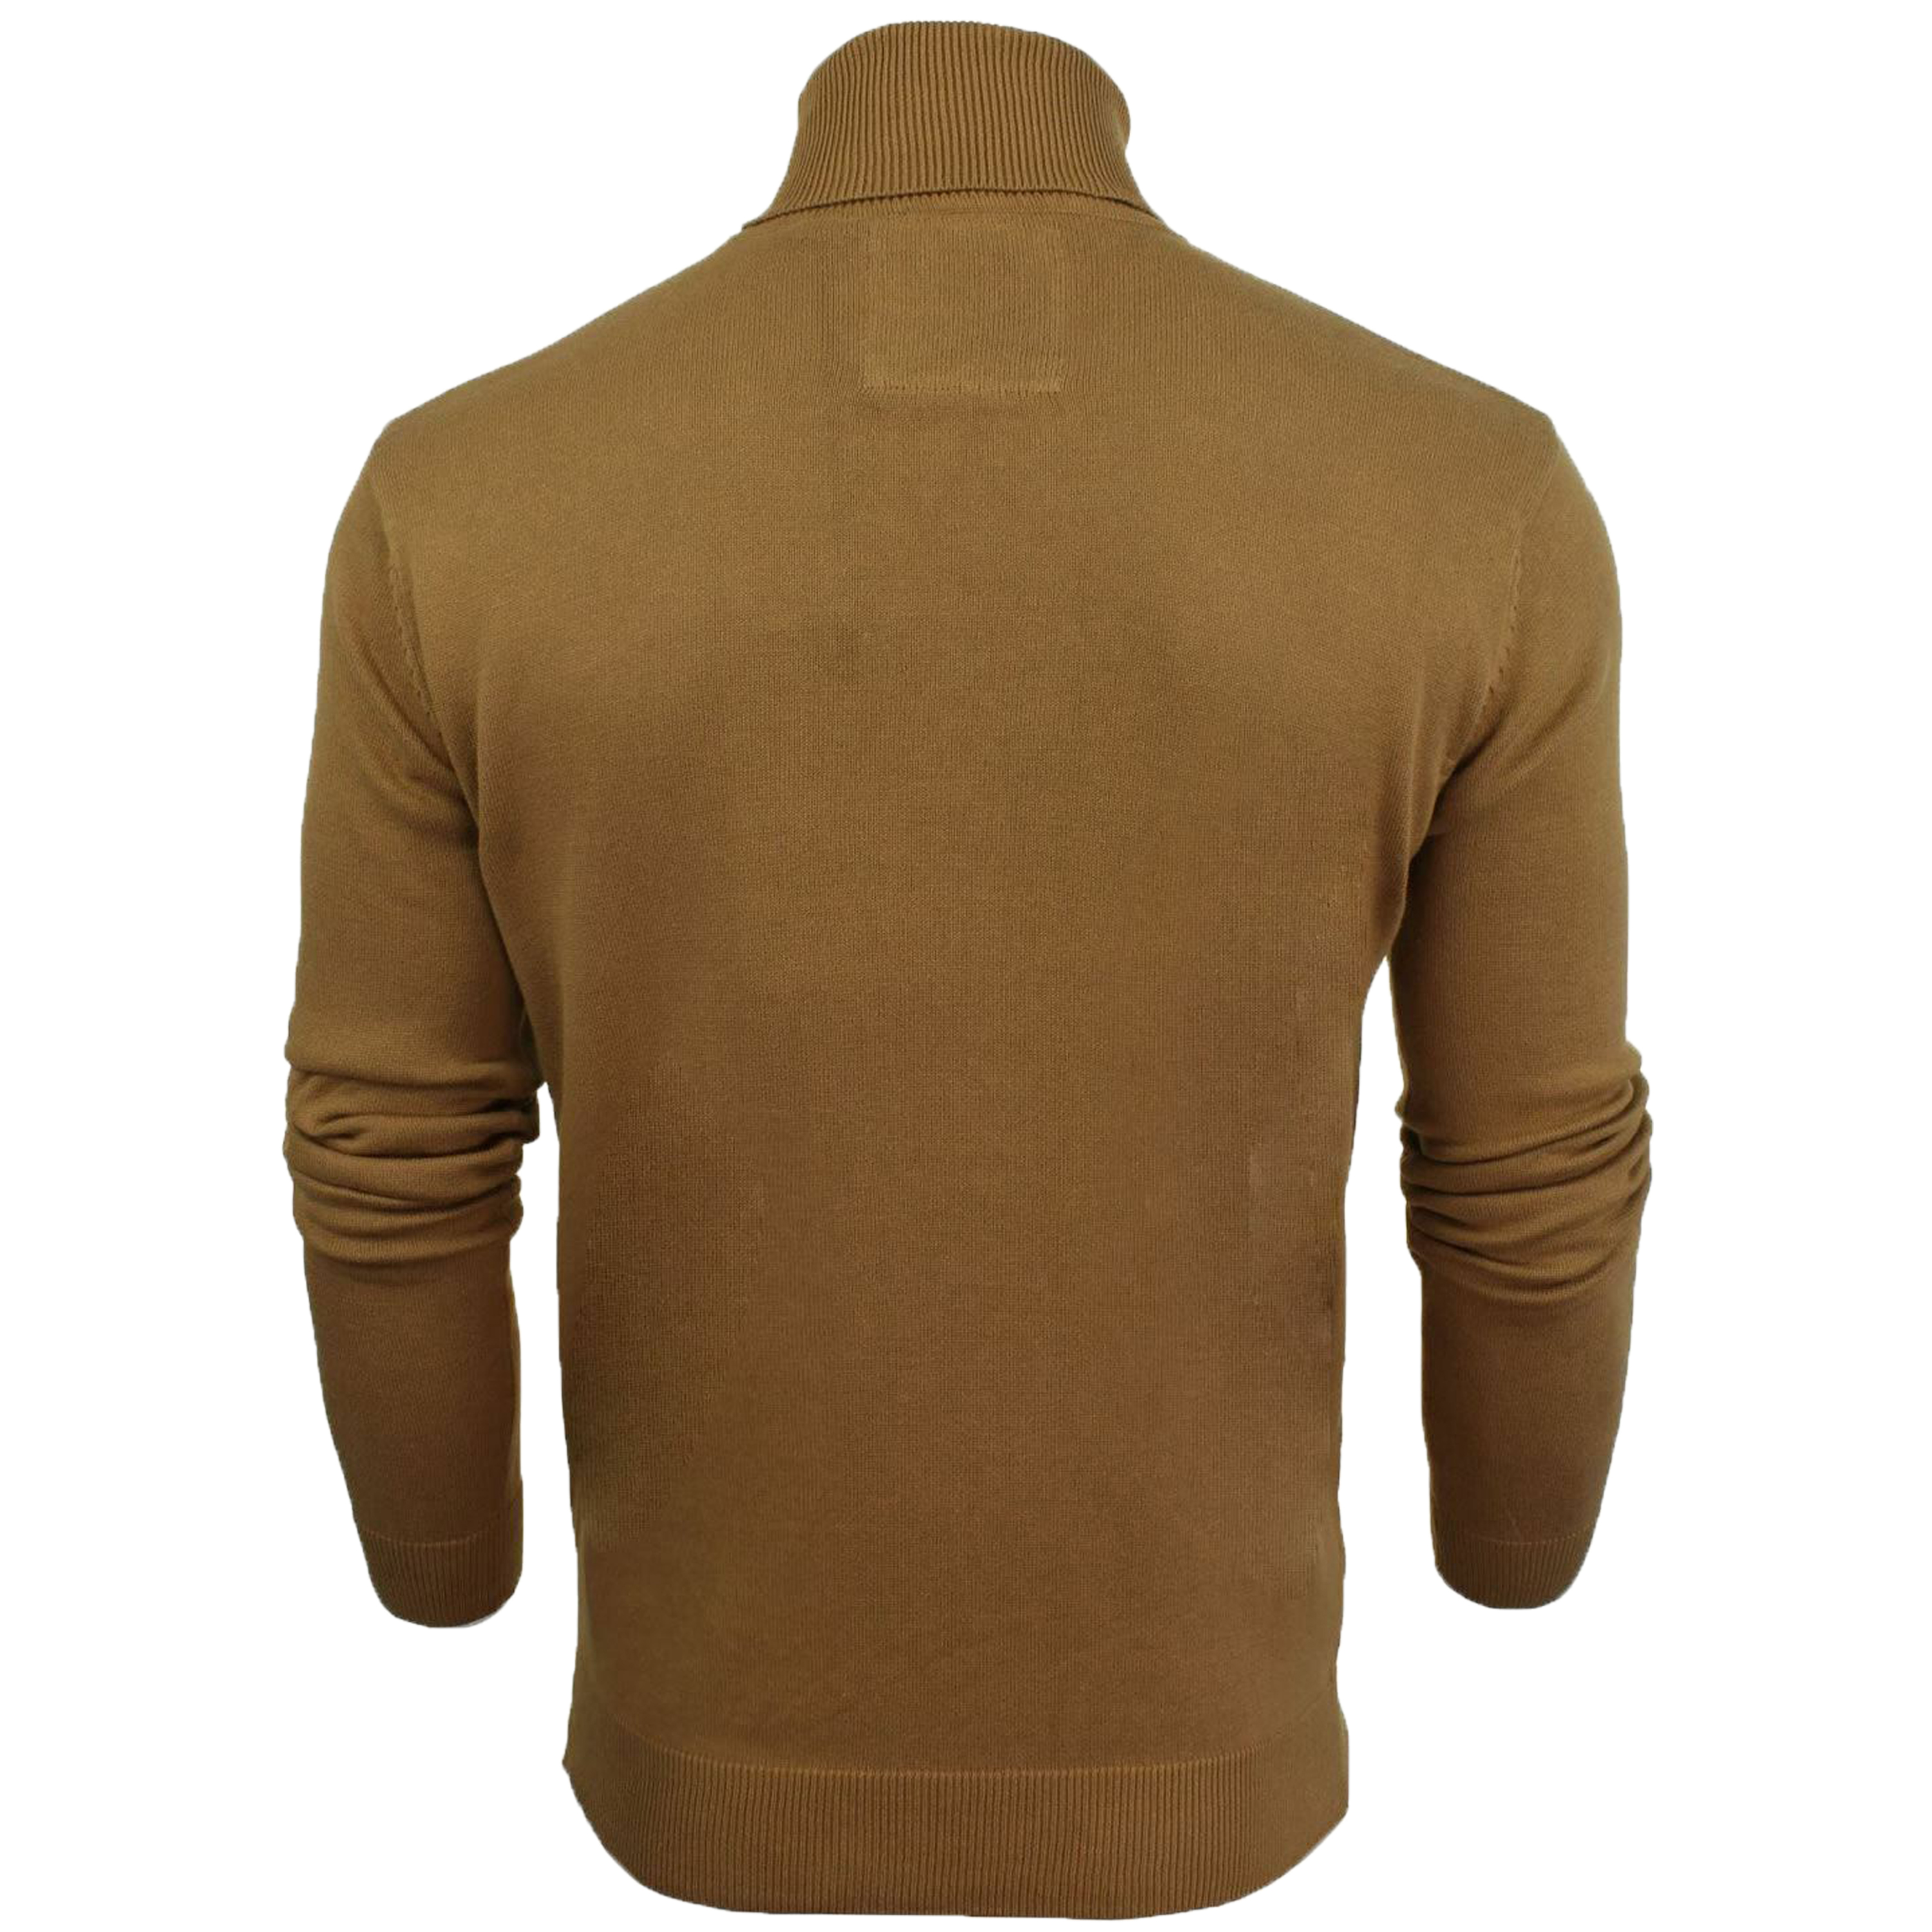 Mens-Brave-Soul-HUME-Roll-Neck-Polo-Light-Cotton-Knitwear-Jumper-Sweater-Winter thumbnail 9